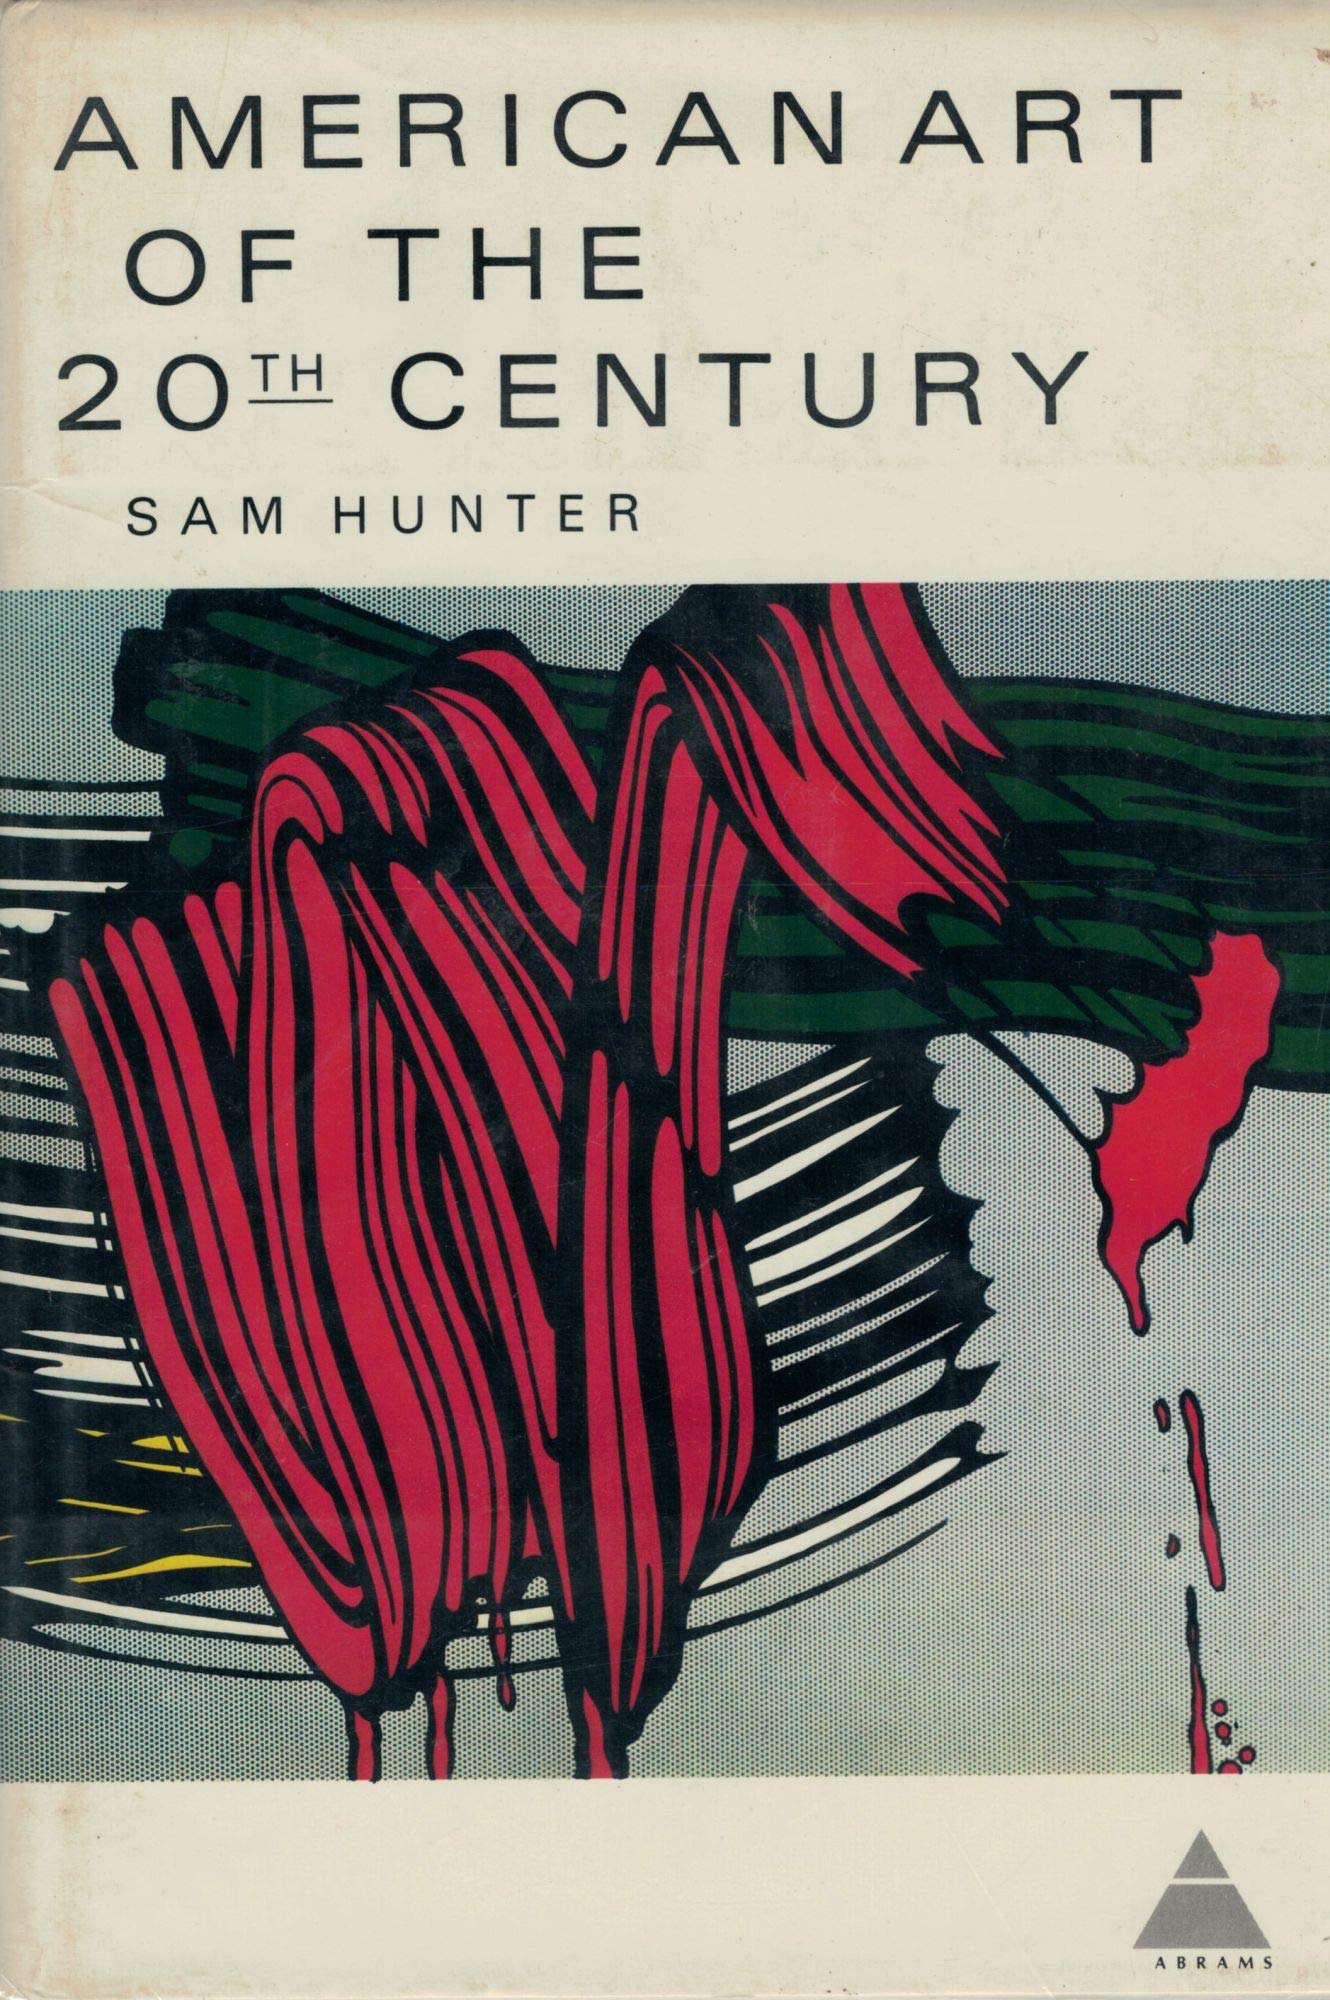 American Art of The 20th Century - Sam Hunter